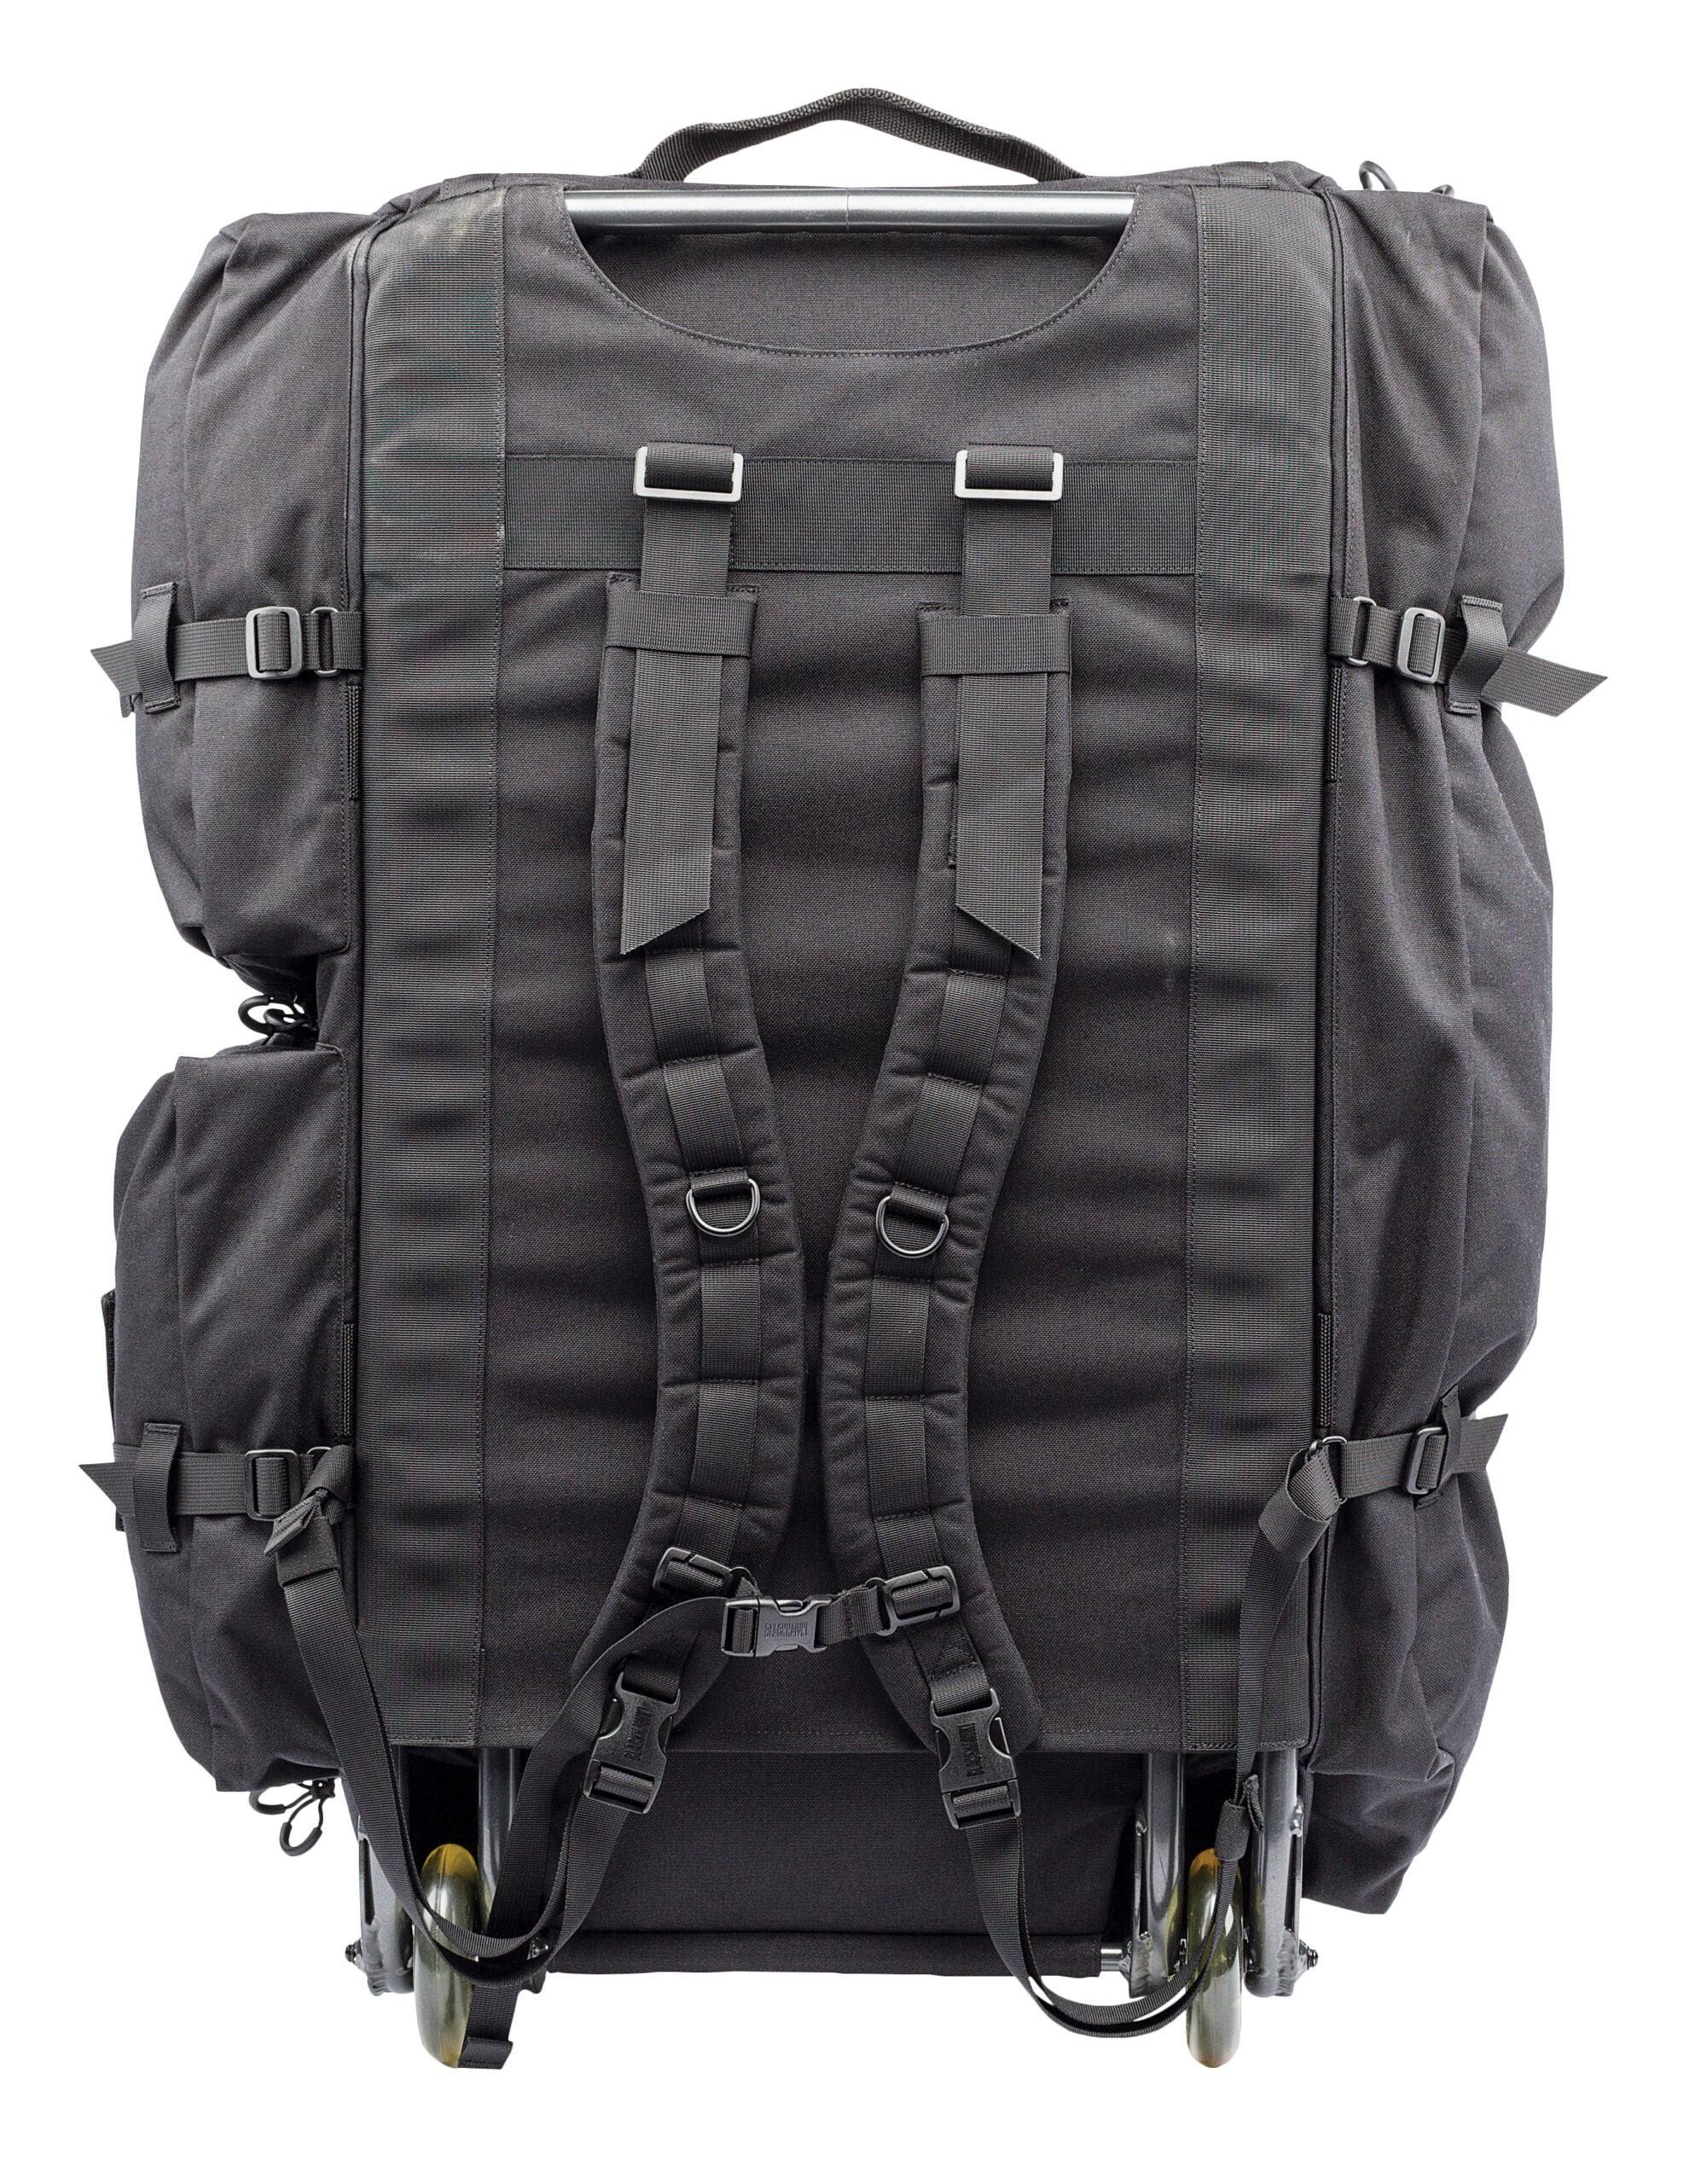 Carry Discreetly with Blackhawk's Diversion Line